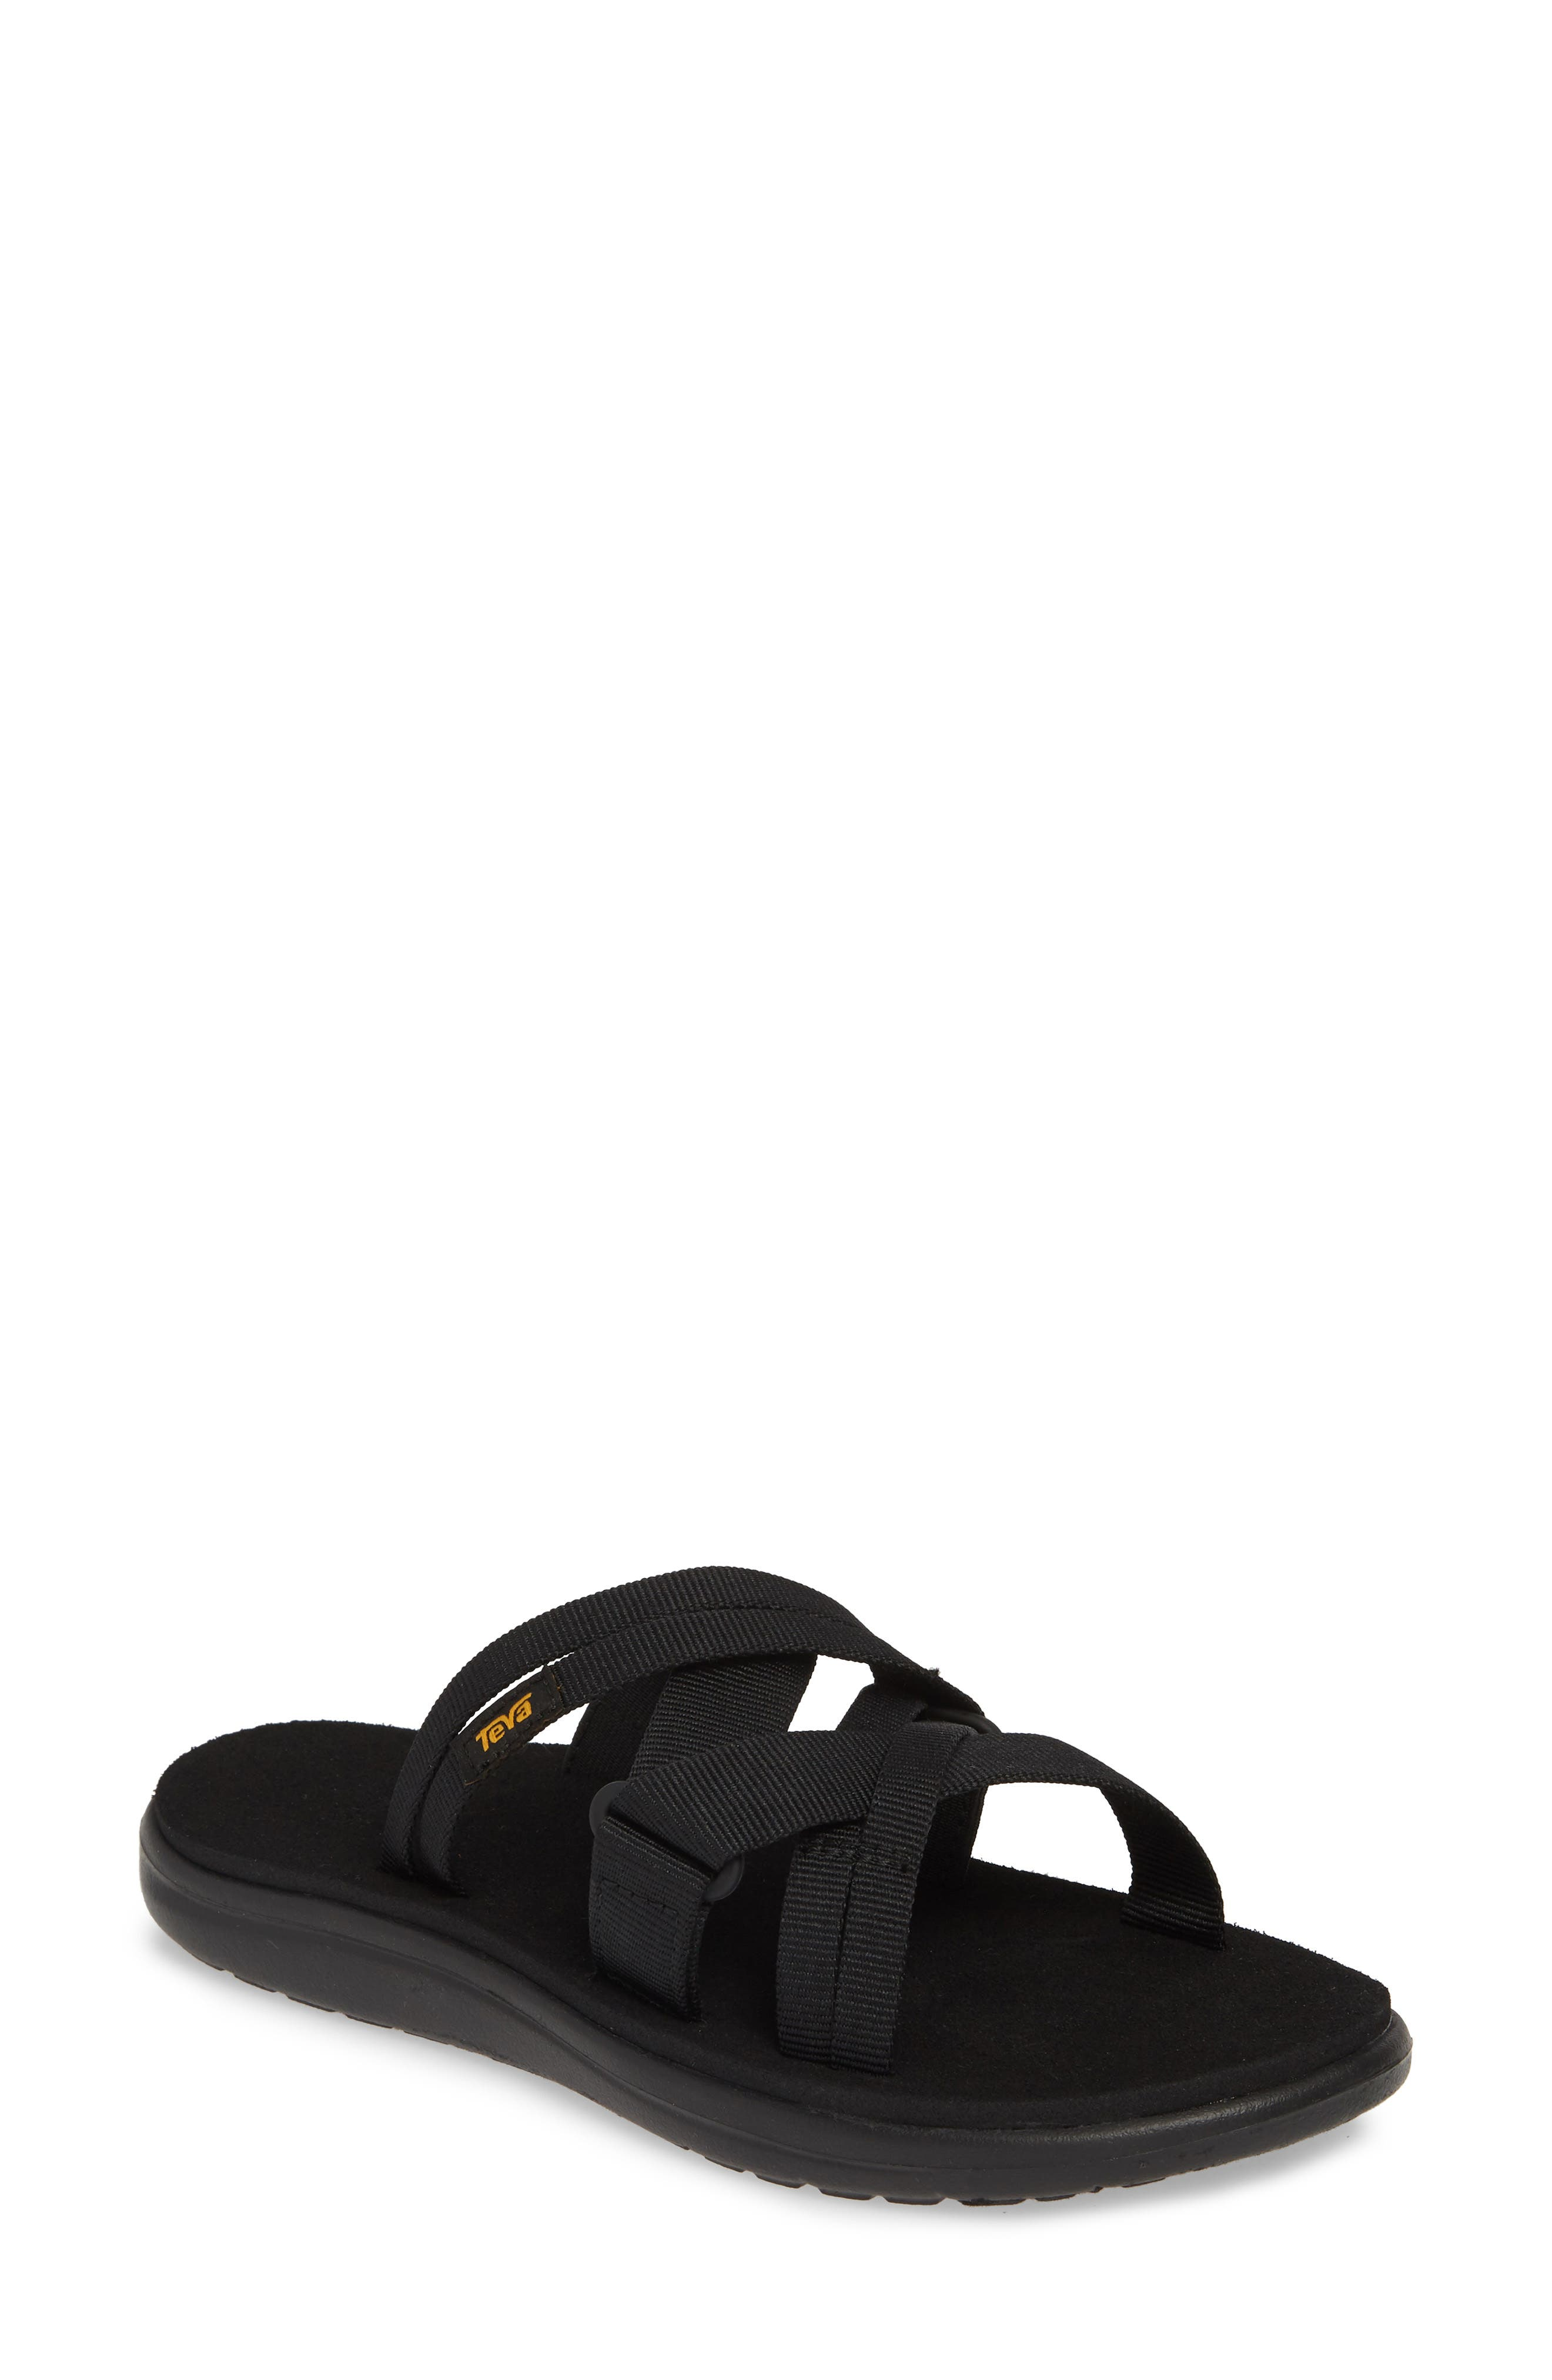 ,                             Voya Infinity Water Friendly Slide Sandal,                             Main thumbnail 1, color,                             BLACK FABRIC